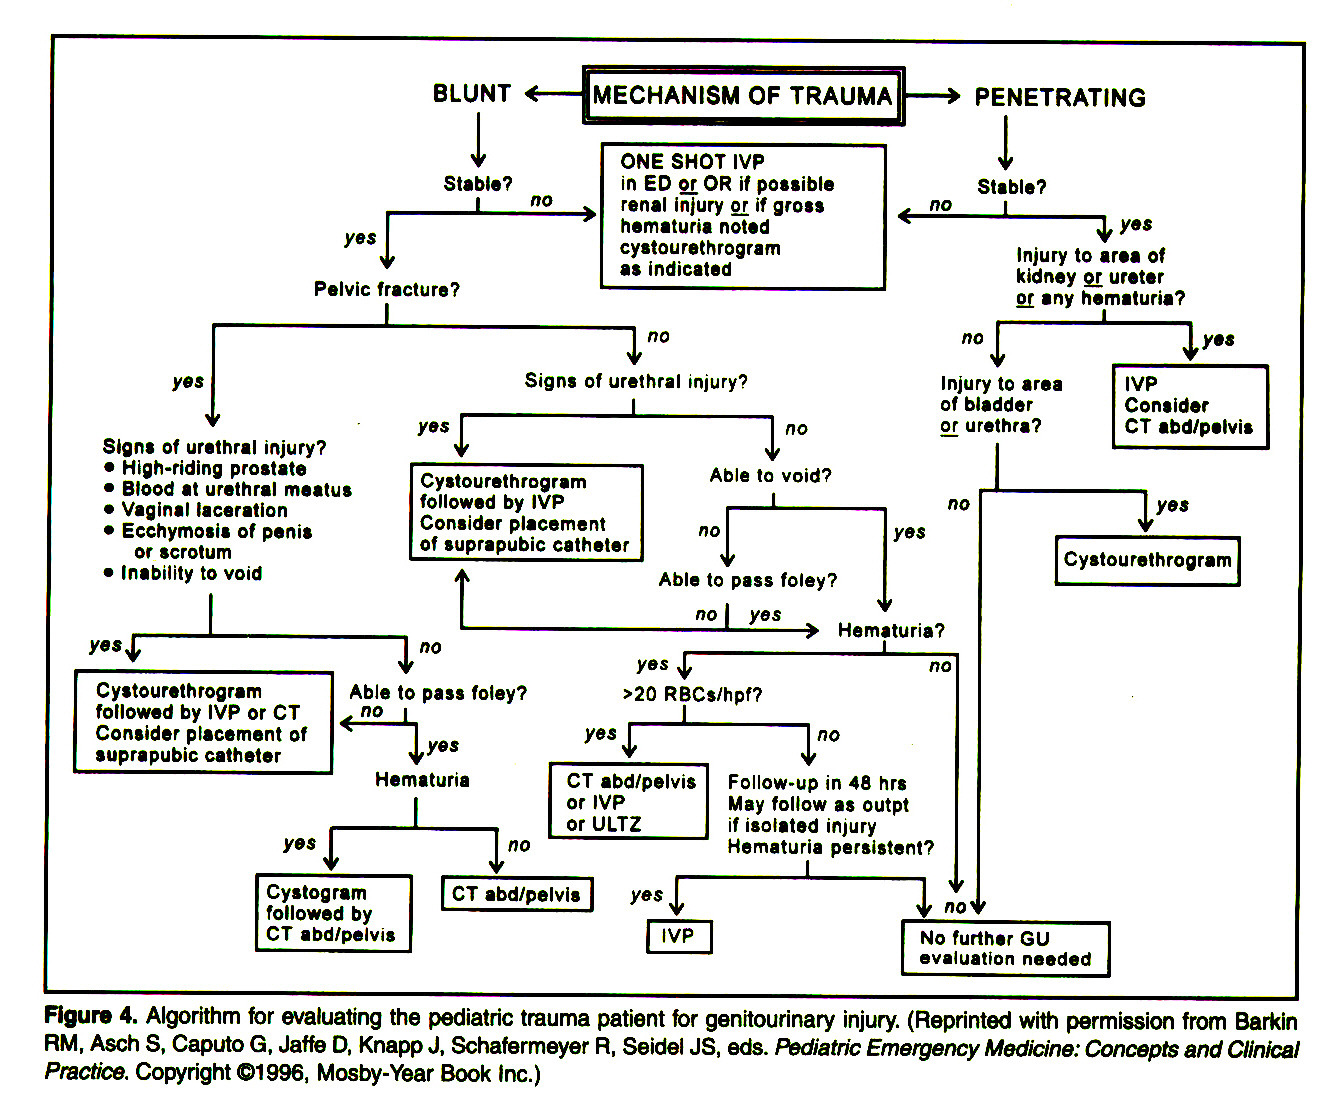 Figure 4. Algorithm for evaluating the pediatrìe trauma patient tor genitourinary injury. (Reprinted with permission from Barkin RM1 Asch S, Caputo G, Jaffa D, Knapp J, Schafermeyer R1 Seidel JS, eds. Pediatrìe Emergency Medicine: Concepts and Clinical Practice. Copyright ©1996, Mosby-Year Book (nc.)